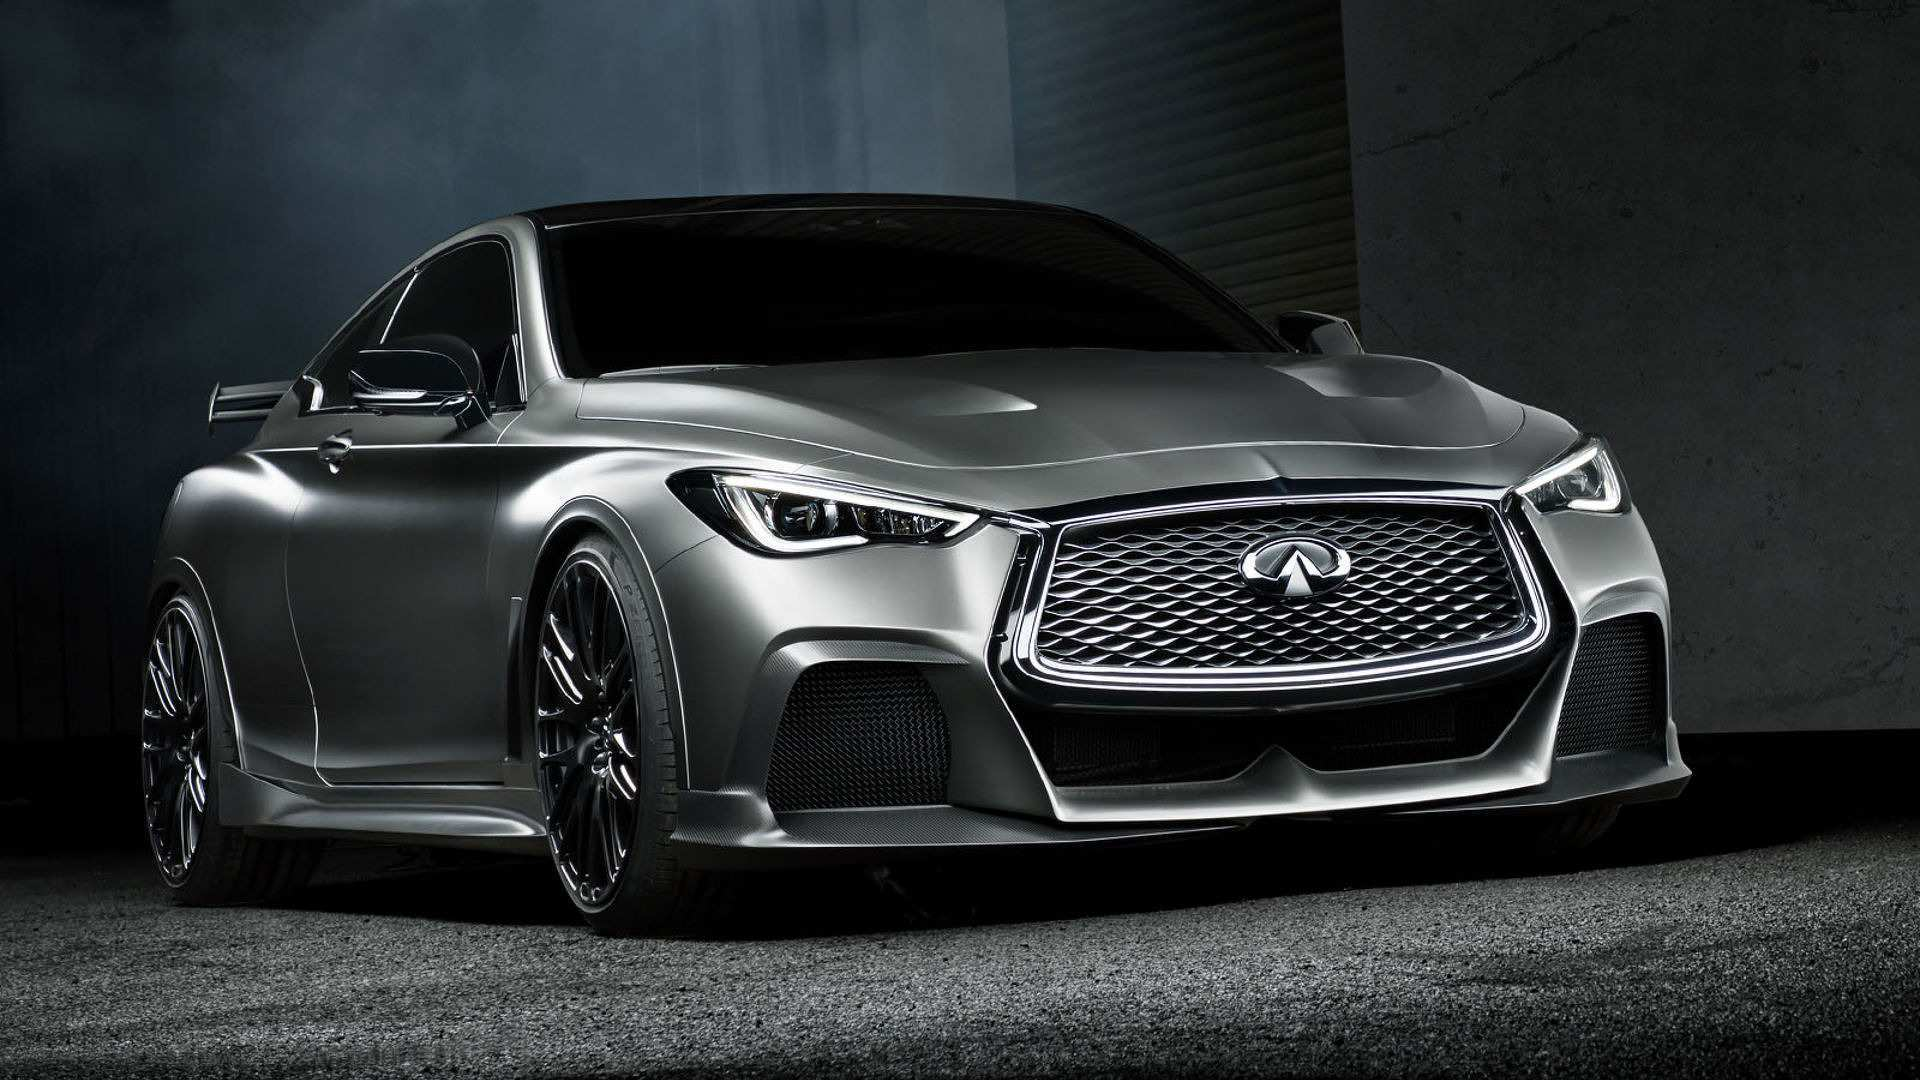 72 The Best 2020 Infiniti Q60 Review And Release Date